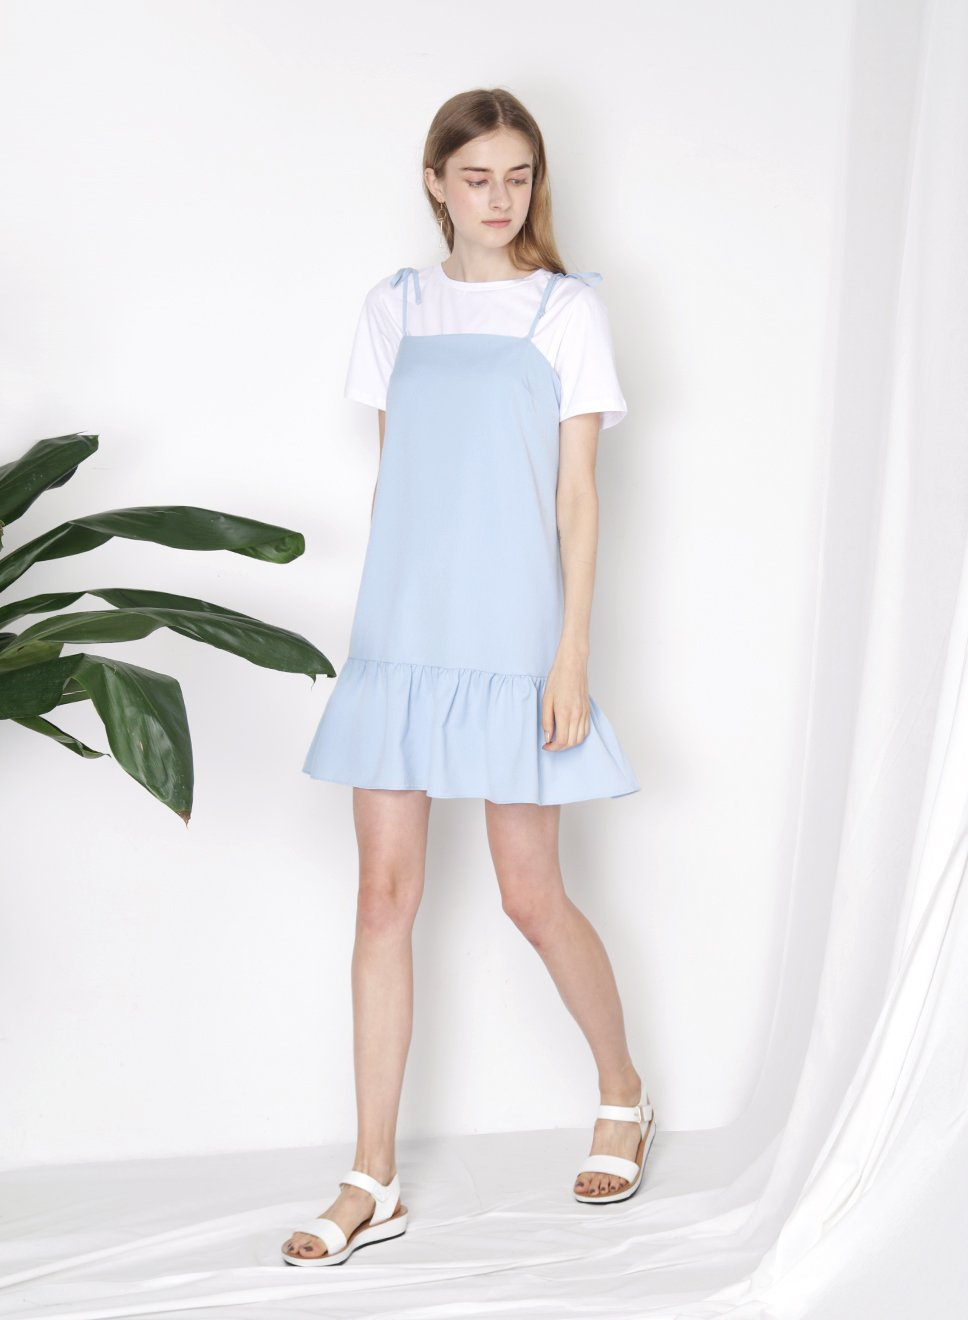 MOMENT Ruffle Hem Dress (Sky) at $ 23.50 only sold at And Well Dressed Online Fashion Store Singapore